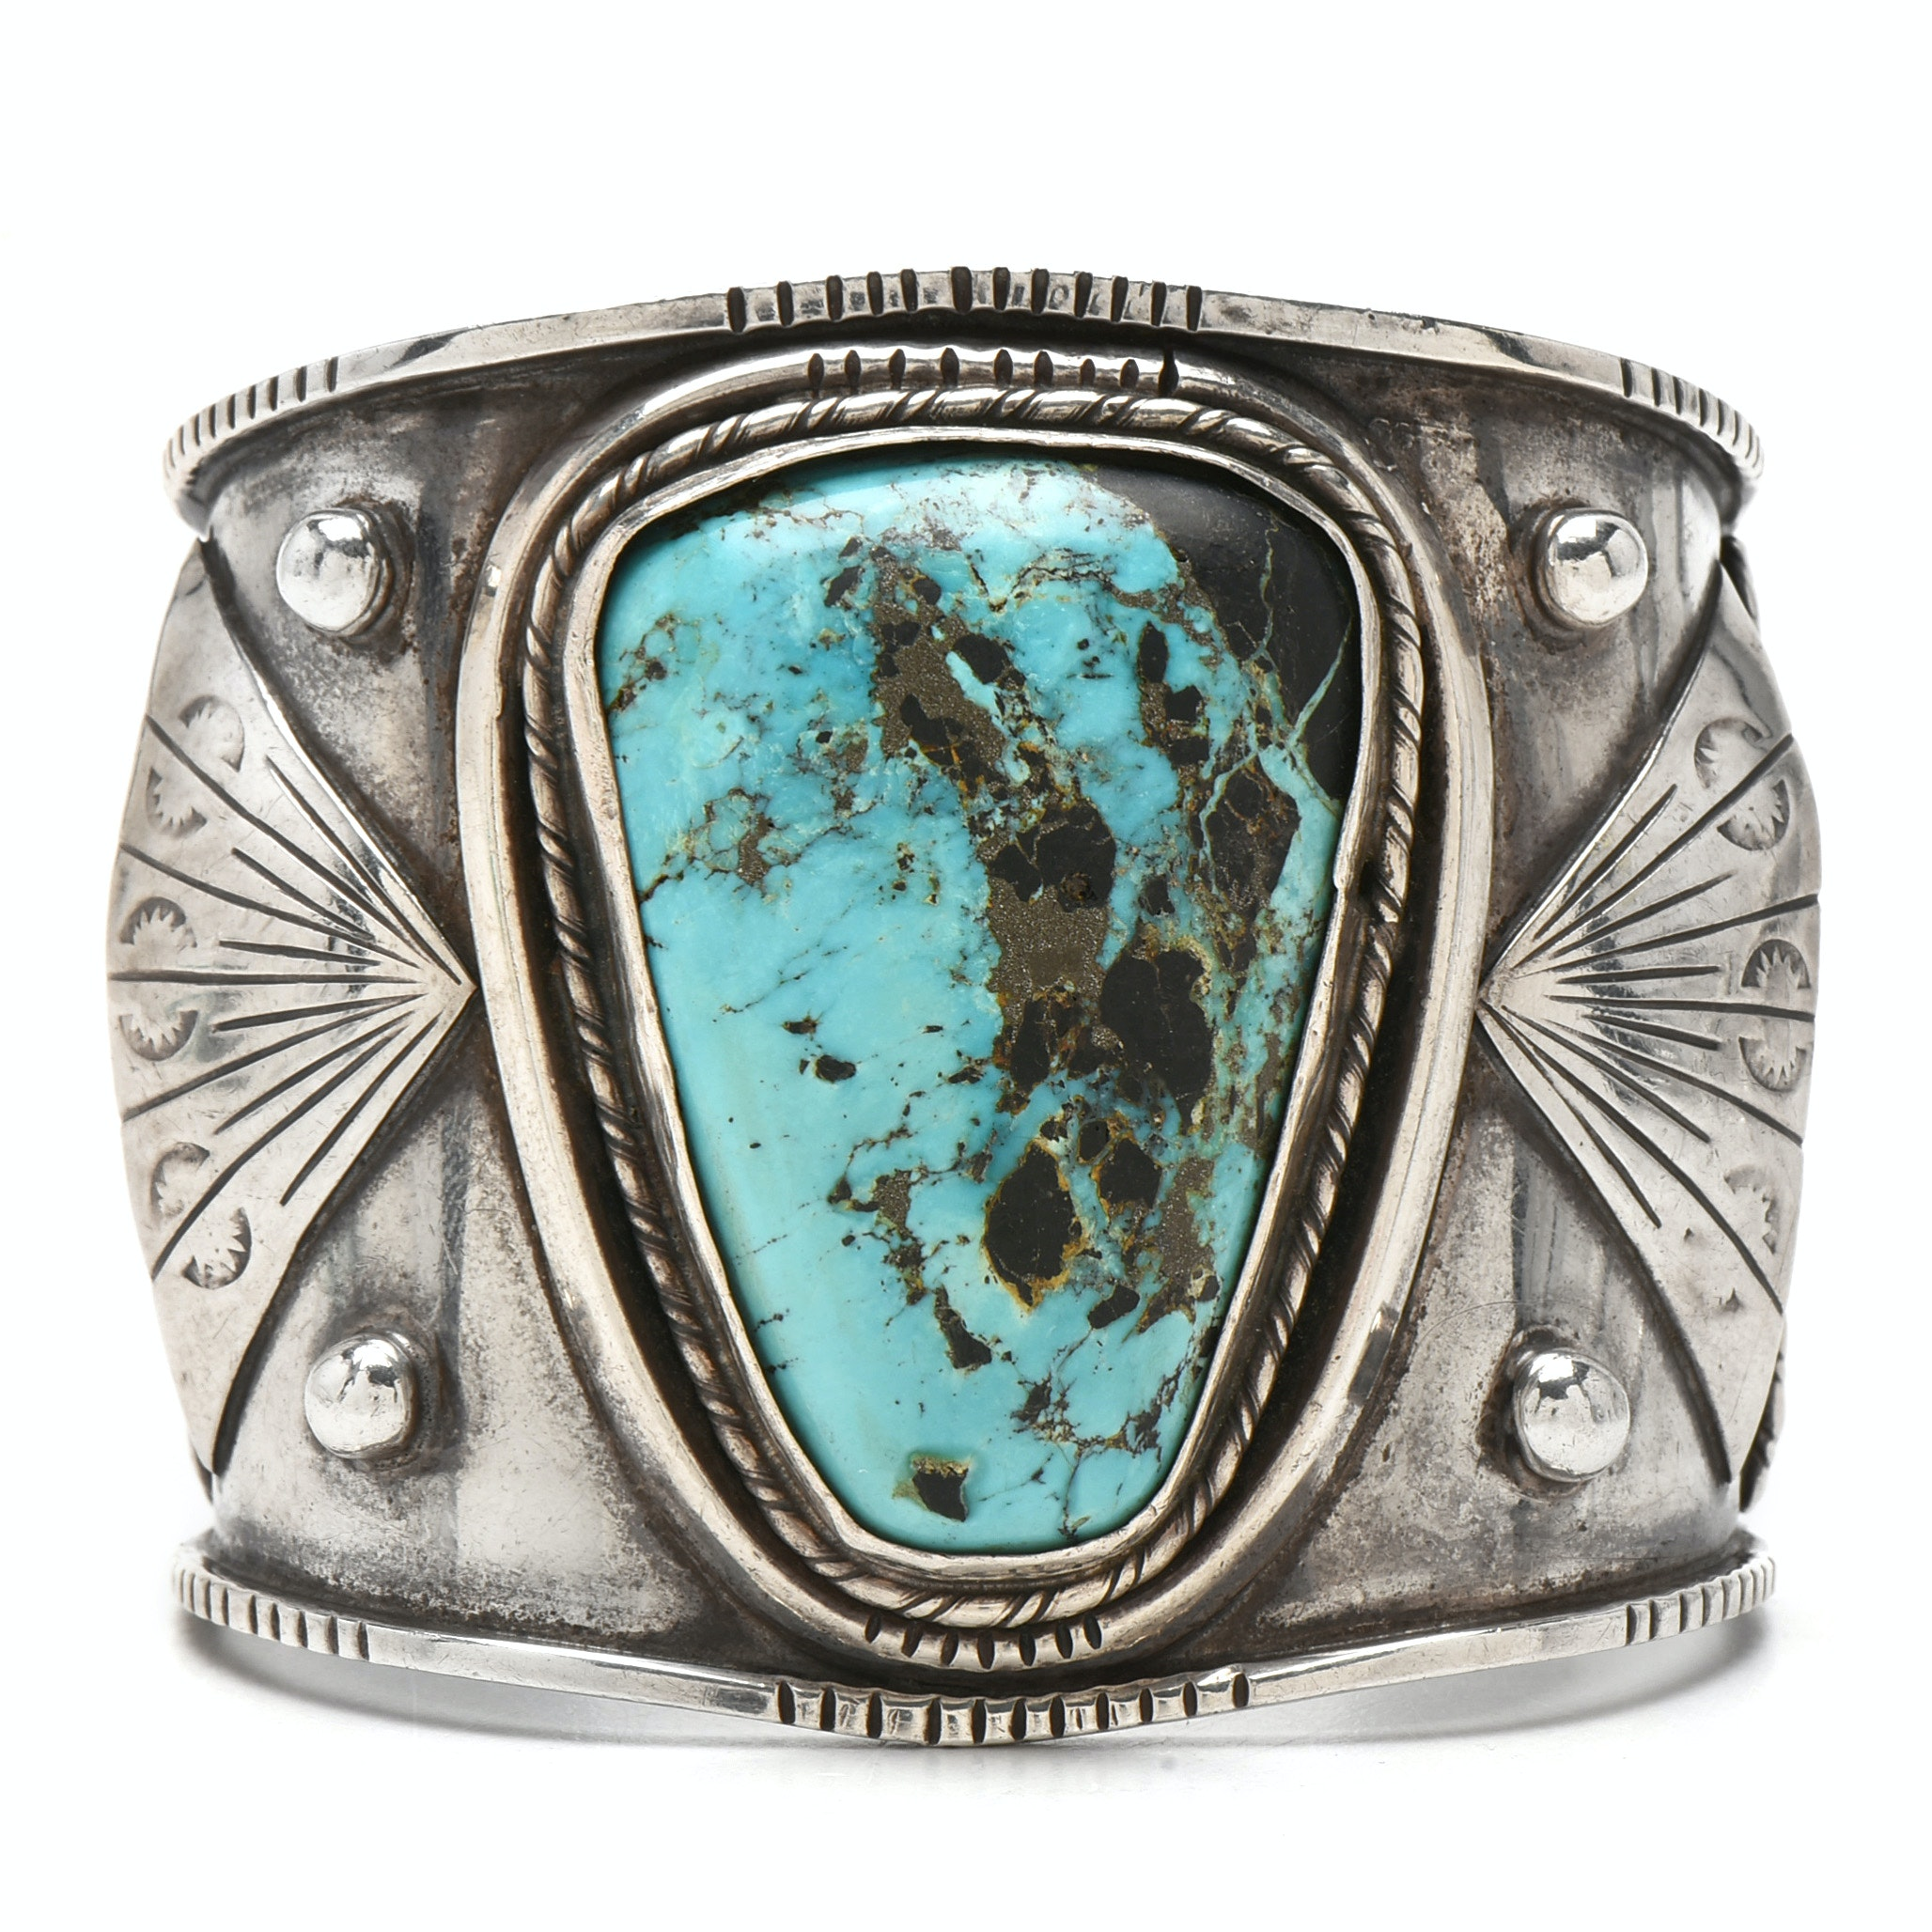 Fred Guerro Navajo Diné Sterling Silver Turquoise Wide Cuff Bracelet